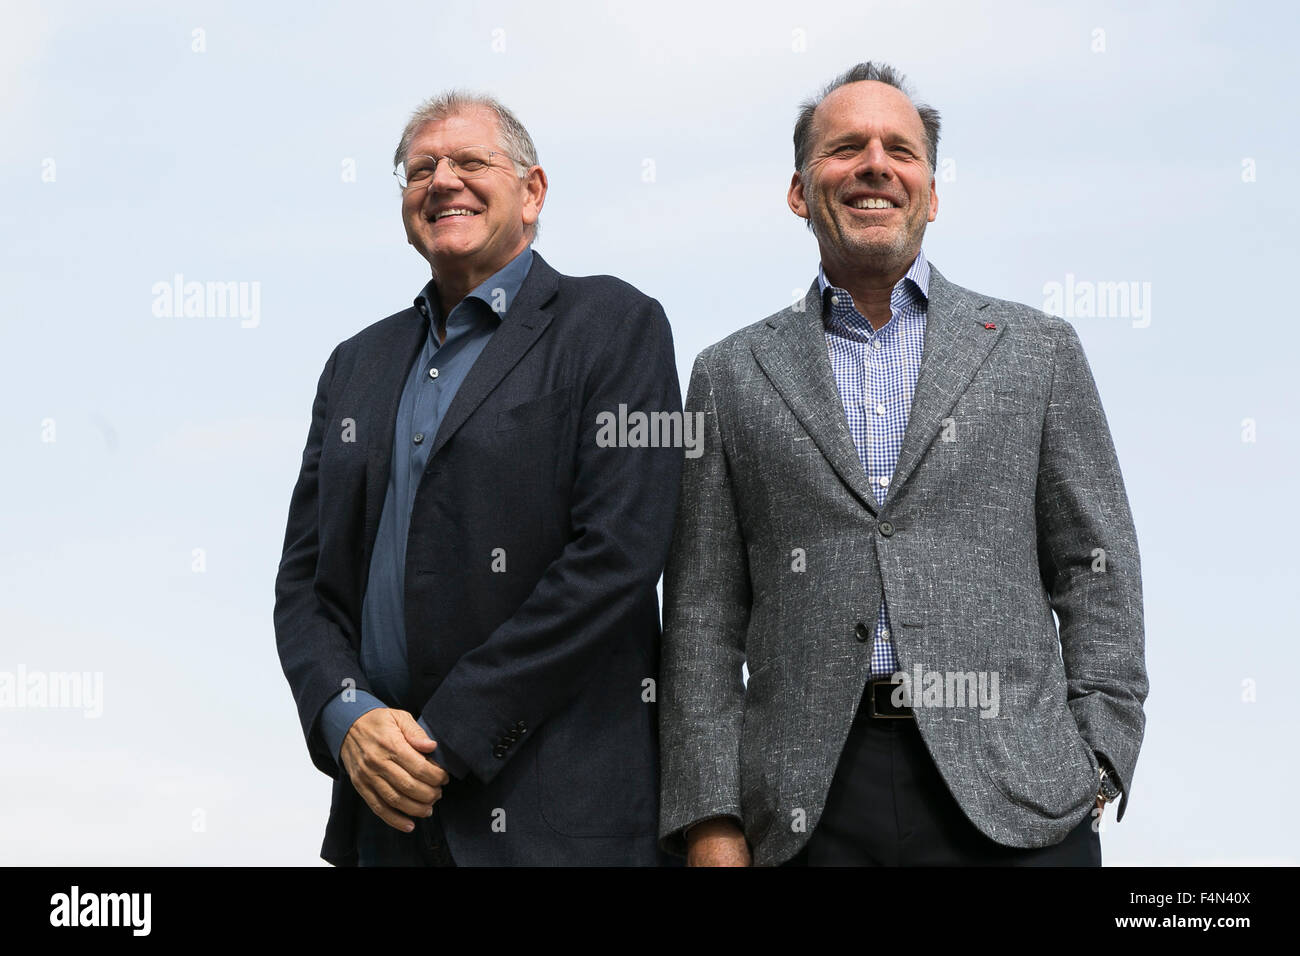 Tokyo, Japan. 21st Oct, 2015. (L to R) Director Robert Zemeckis and producer Jack Rapke, both from the USA, pose - Stock Image